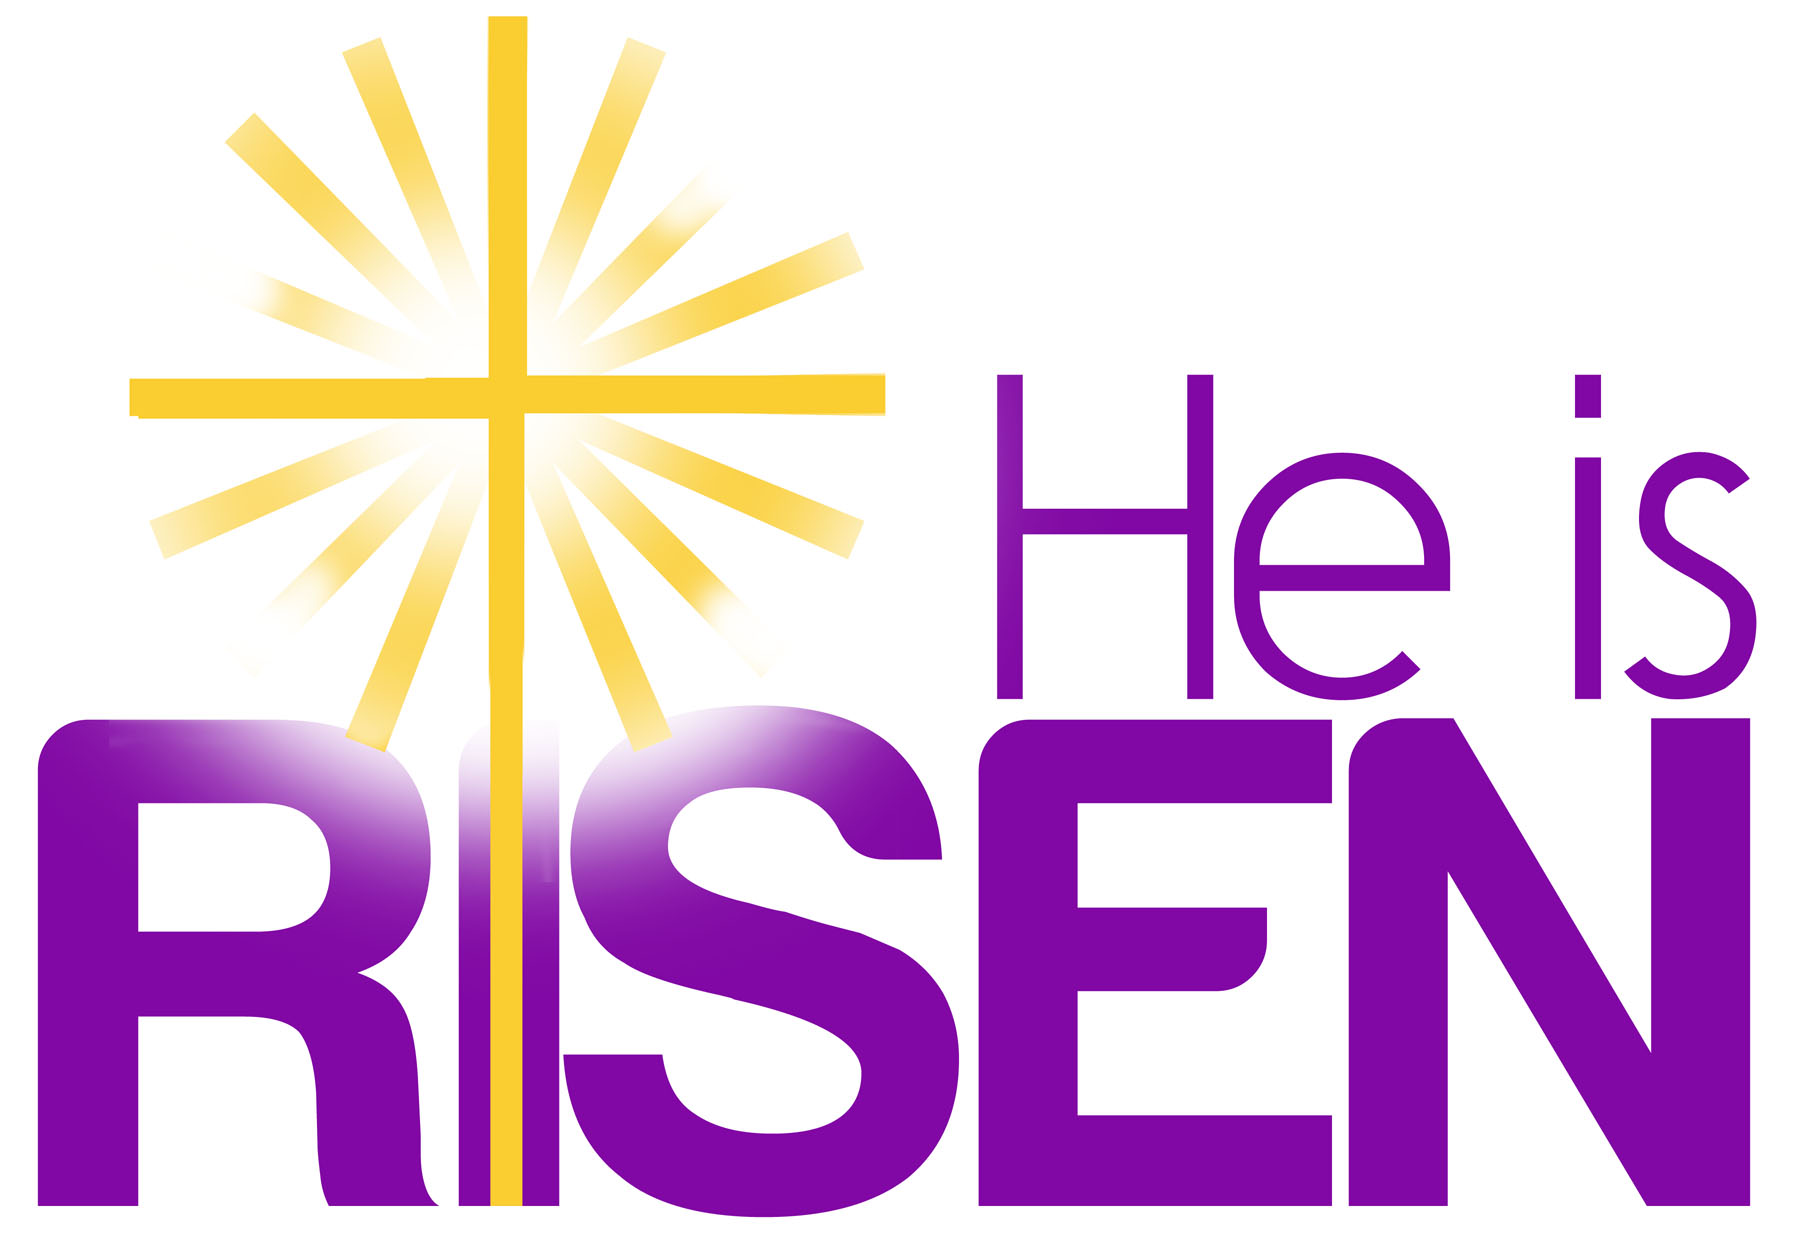 hight resolution of 1800x1237 easter sunday clipart 1 st alban s episcopal church